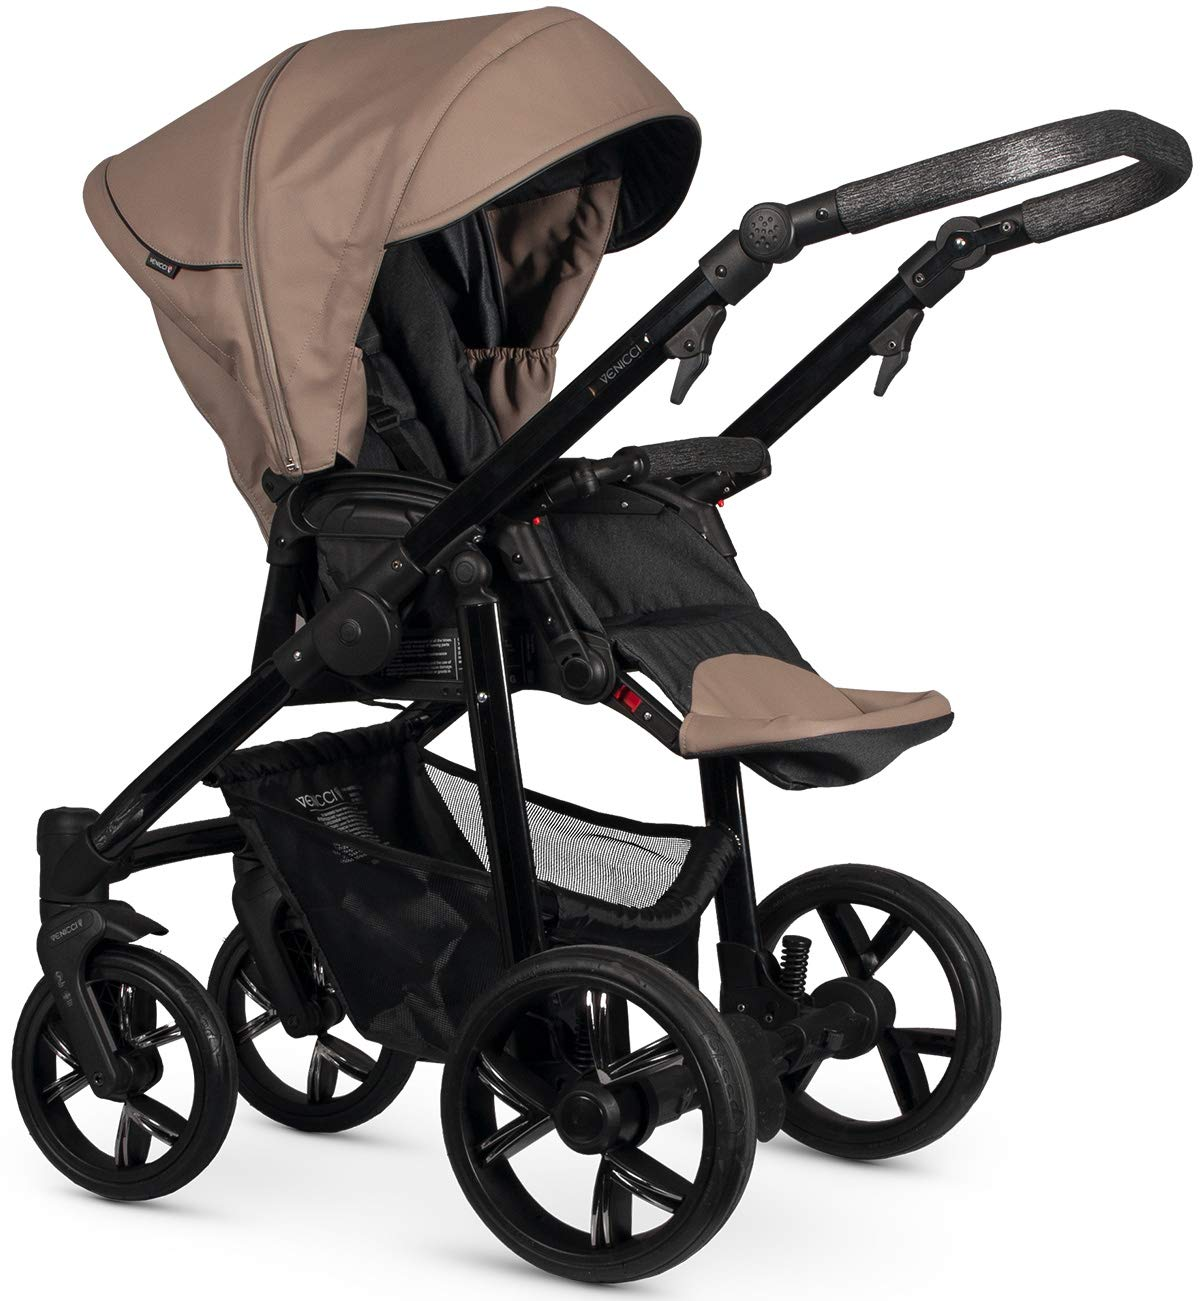 Venicci Valdi 2-in-1 Travel System - Cappuccino Venicci Carrycot: L 102cm W 61cm H 112 cm Age suitability: From birth to 6 months Seat unit: L 95cm W 61cm H 112cm Age suitability: From 7 to 36 months Chassis without wheels: L 82cm W 51cm H 28cm 2